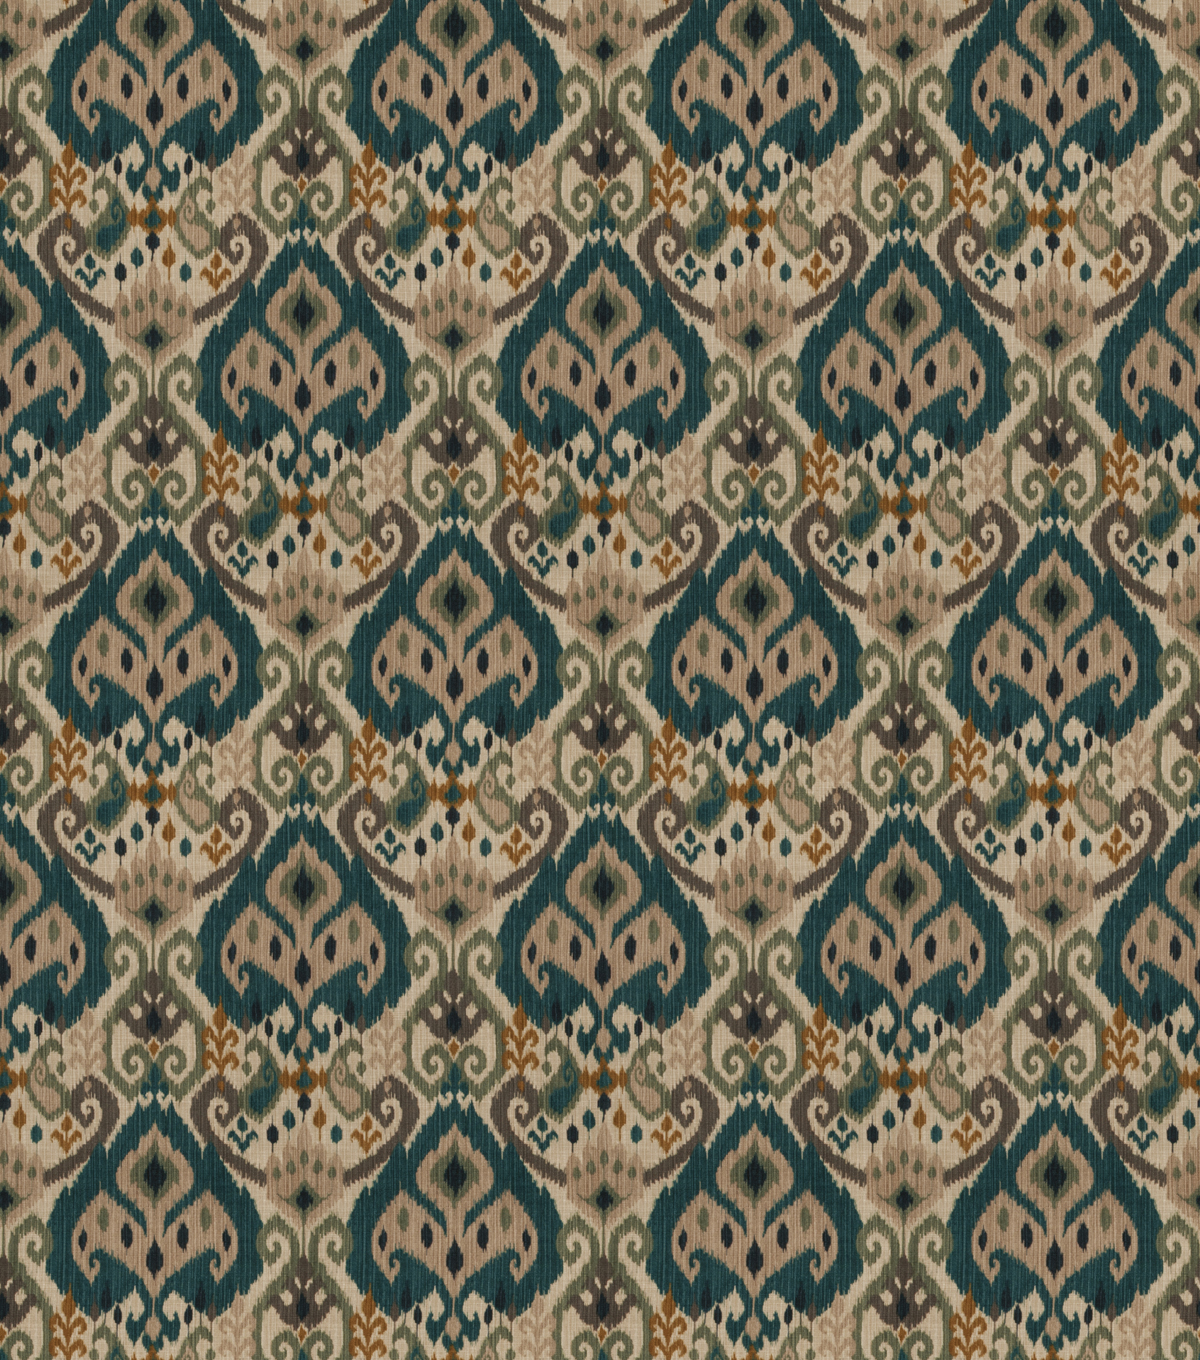 SMC Designs Multi-Purpose Decor Fabric 54\u0022-Edison/ Twilight